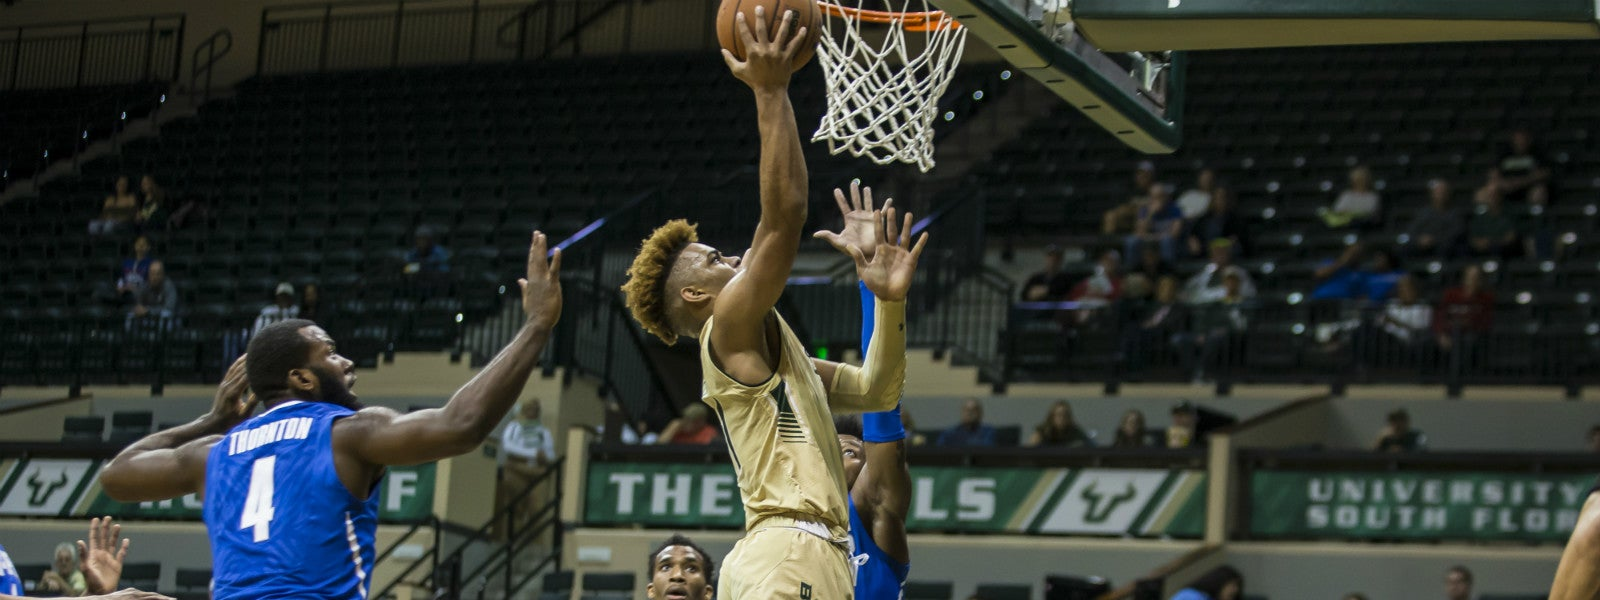 USF Men's Basketball vs. Temple